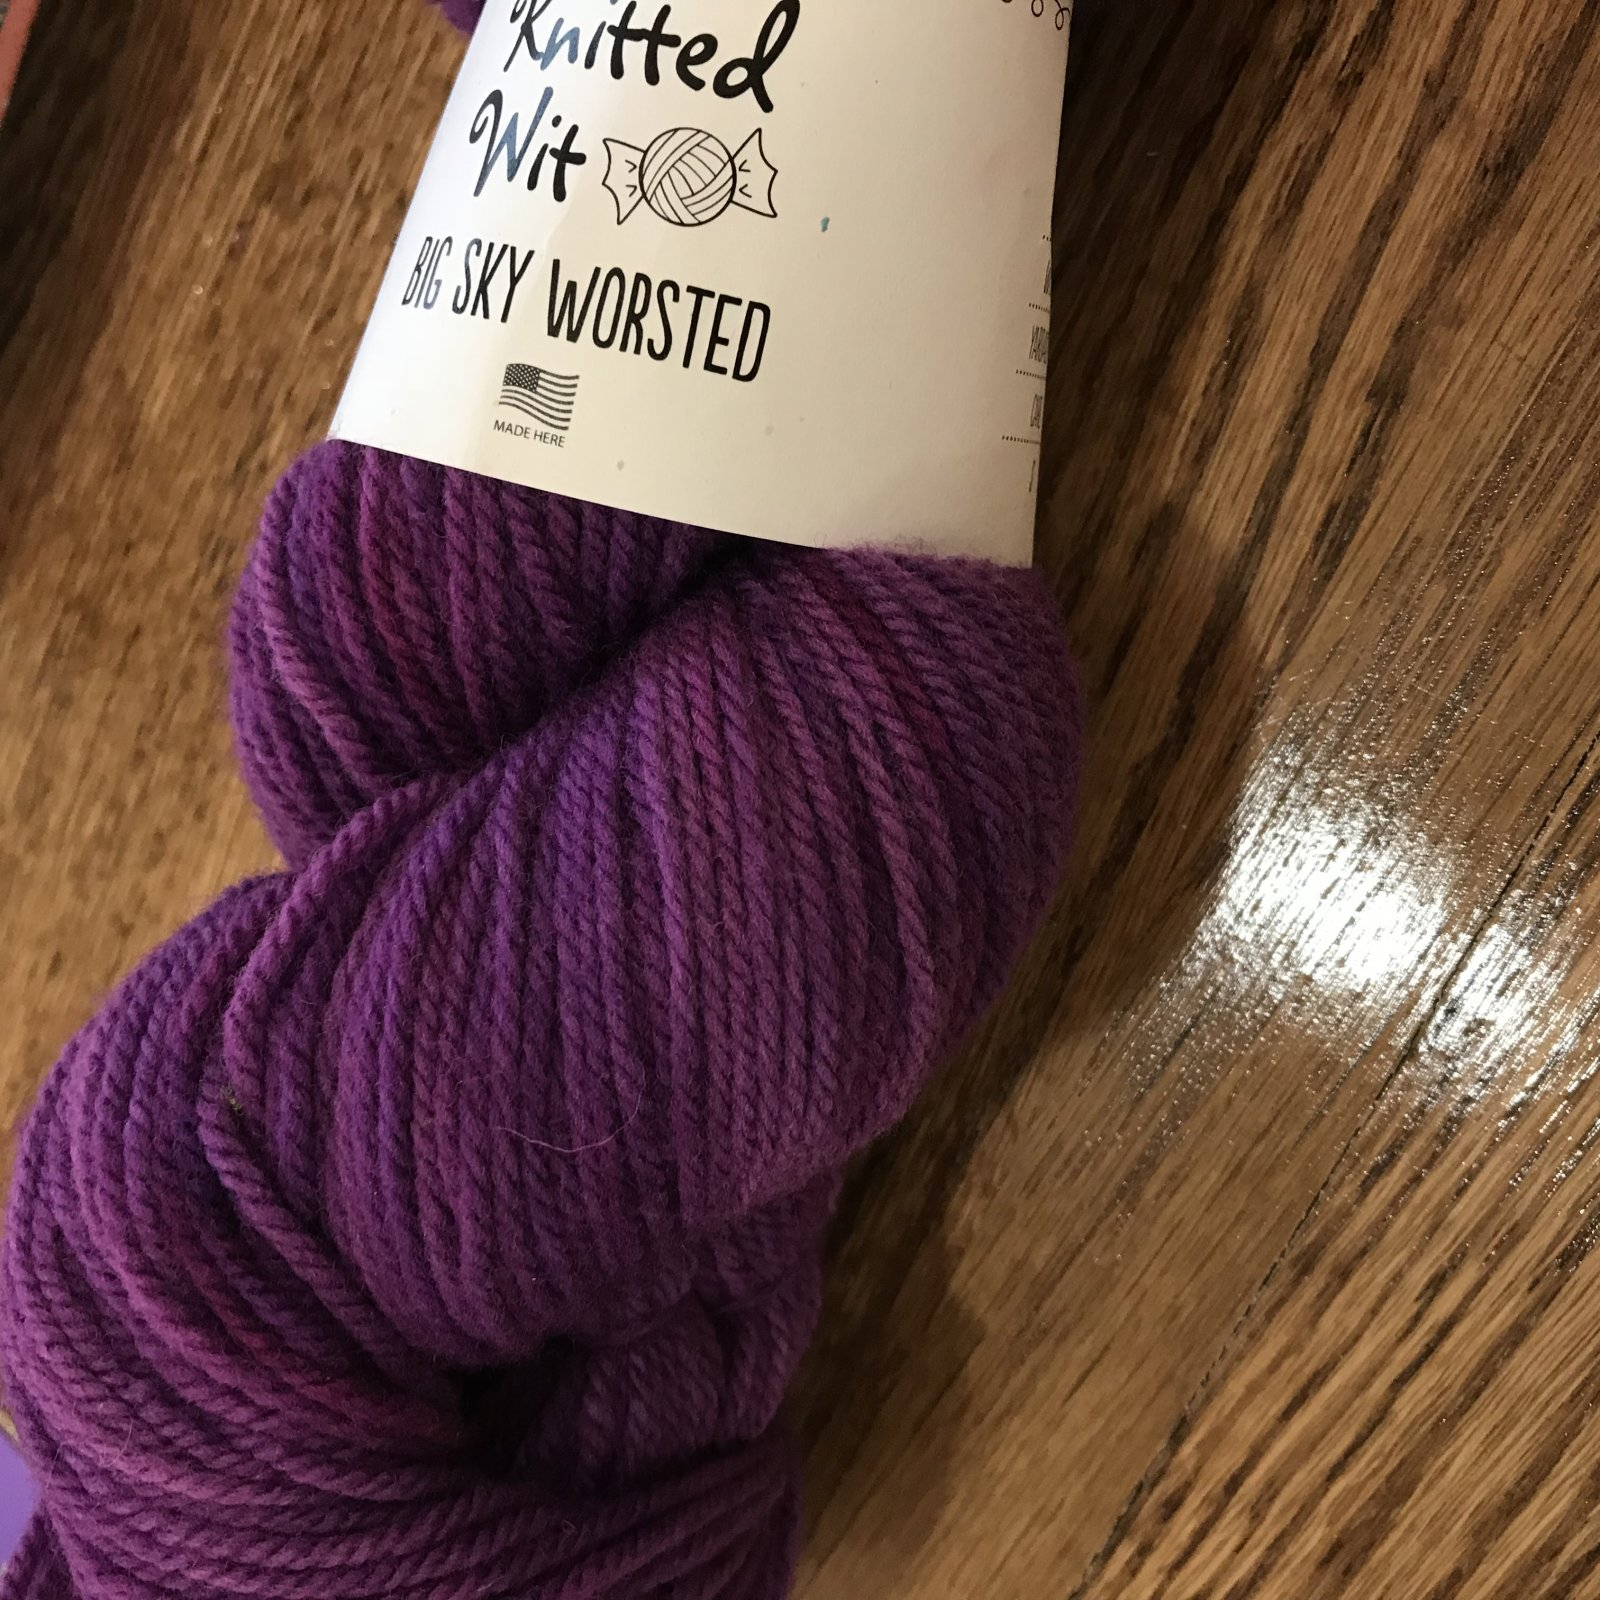 Big Sky Worsted in Thistle